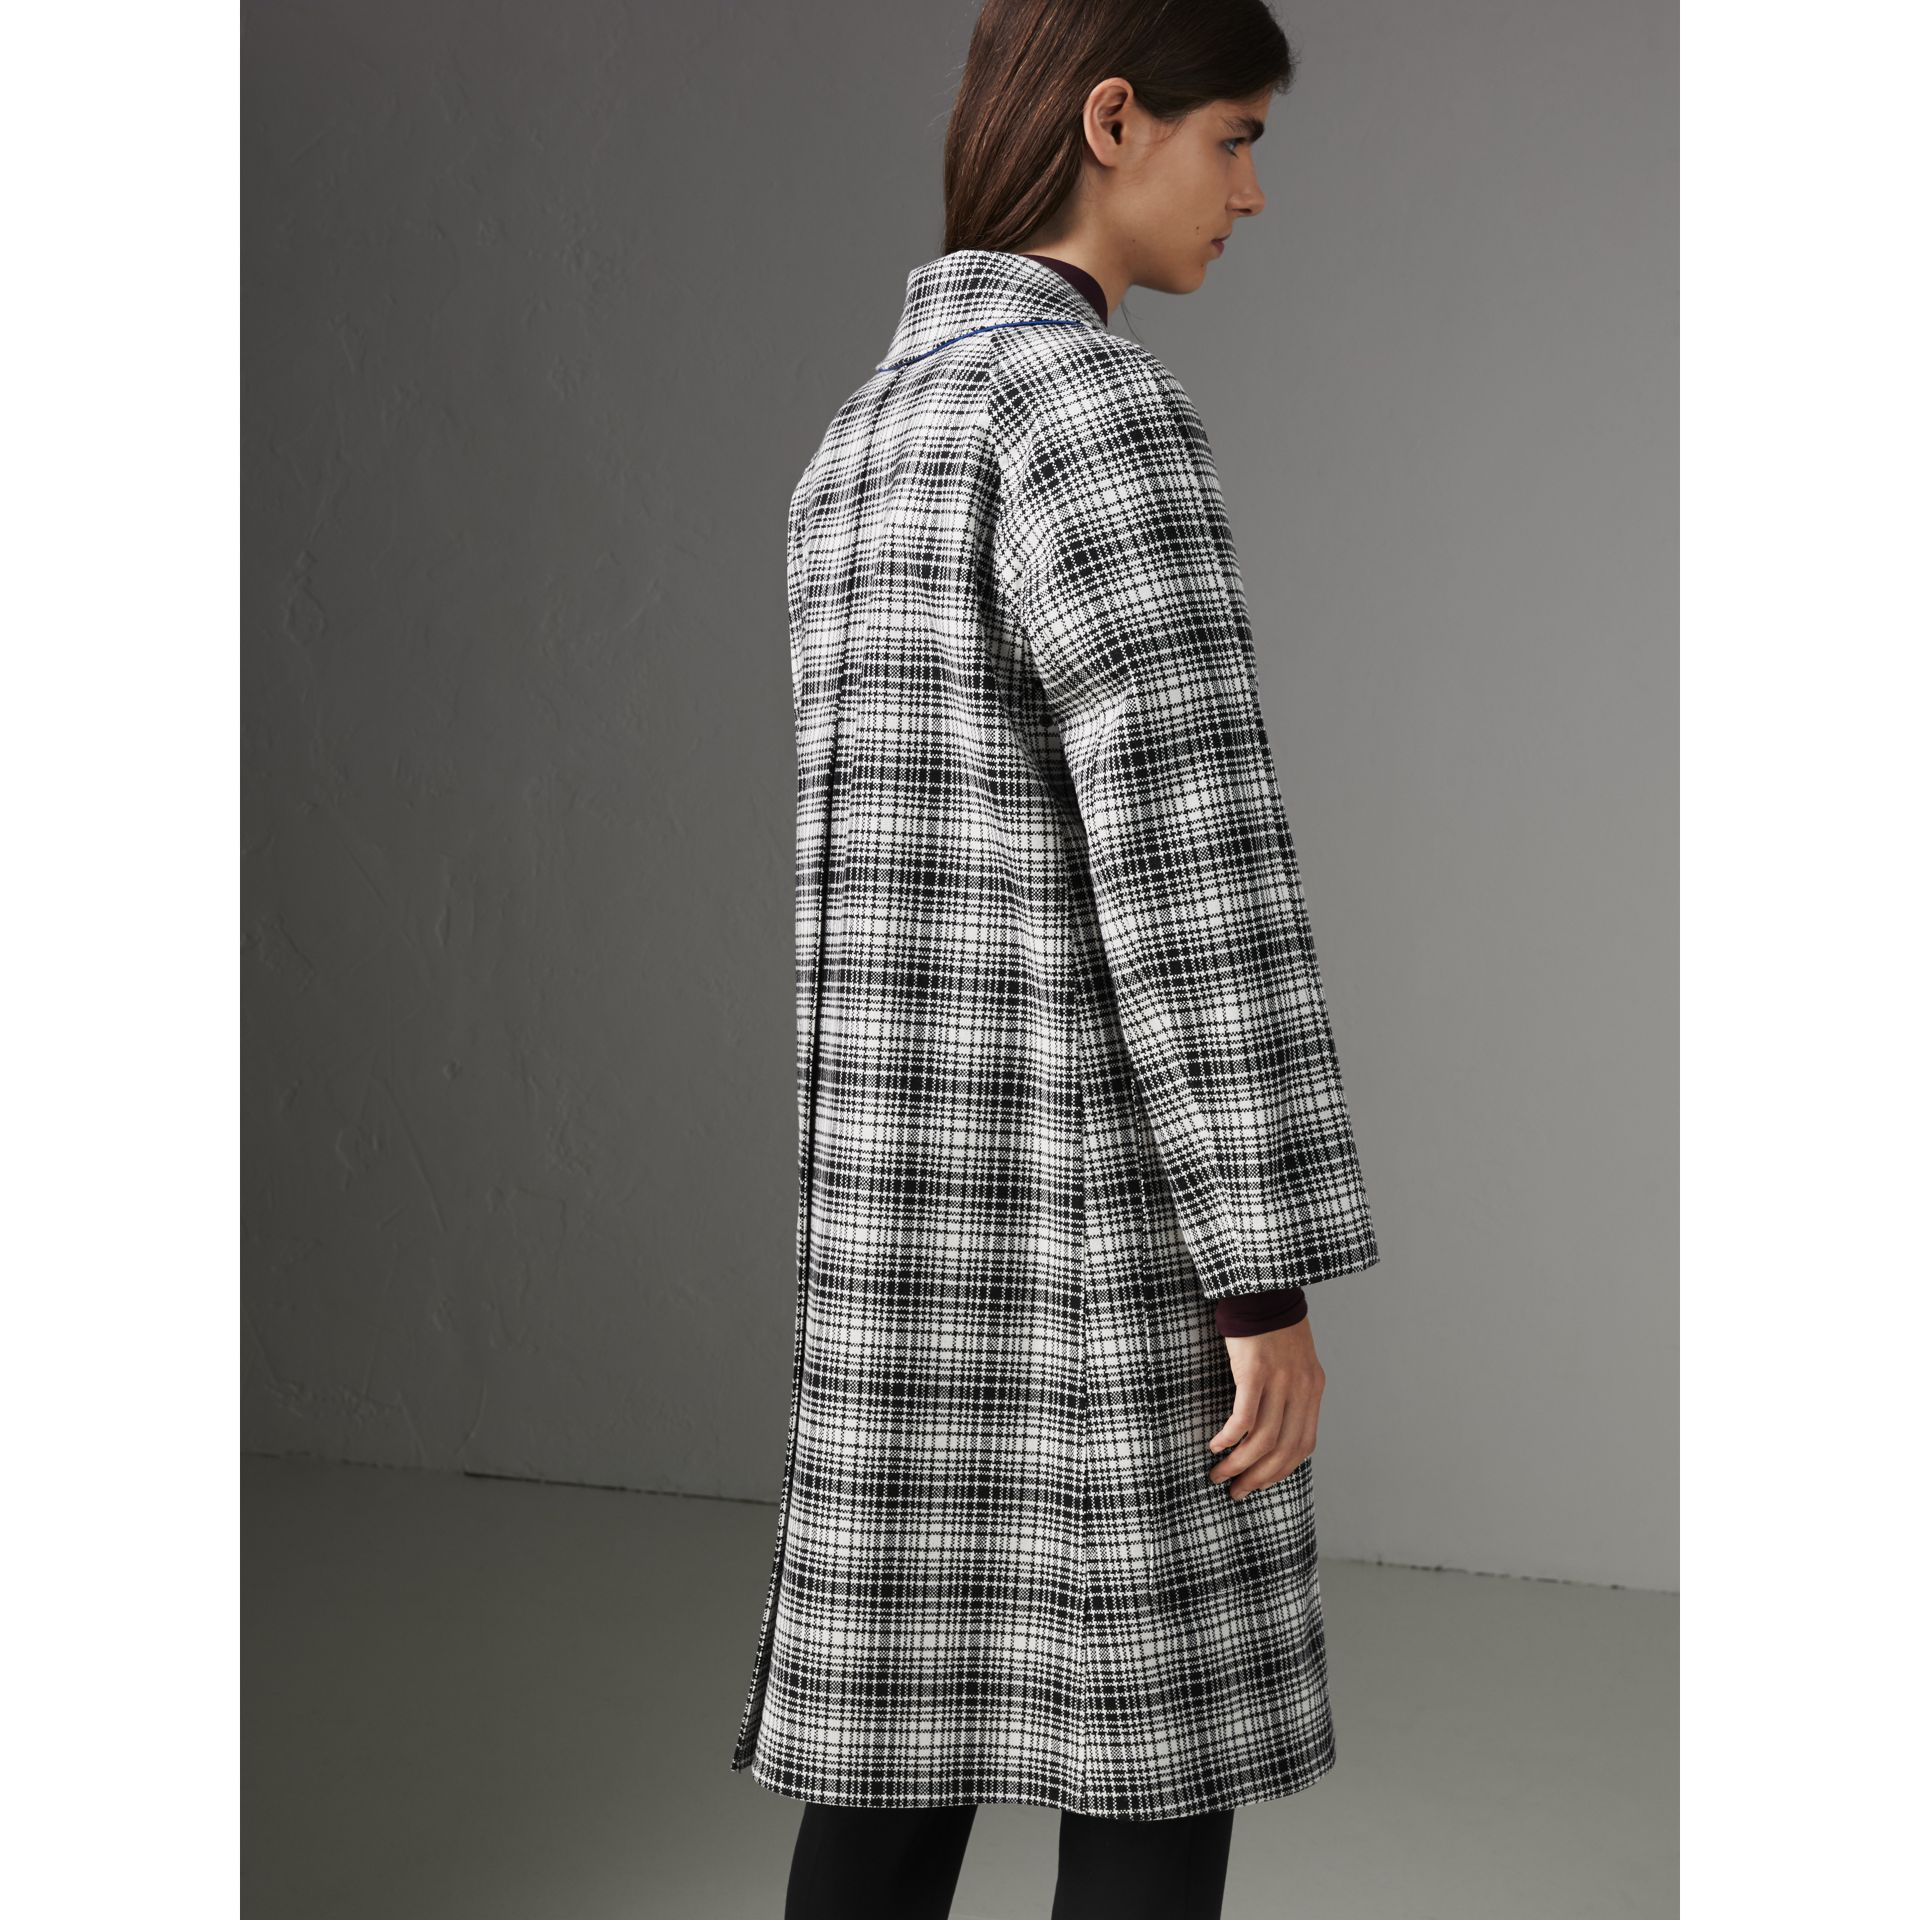 Check Wool Tailored Coat in Black/white - Women | Burberry - gallery image 2